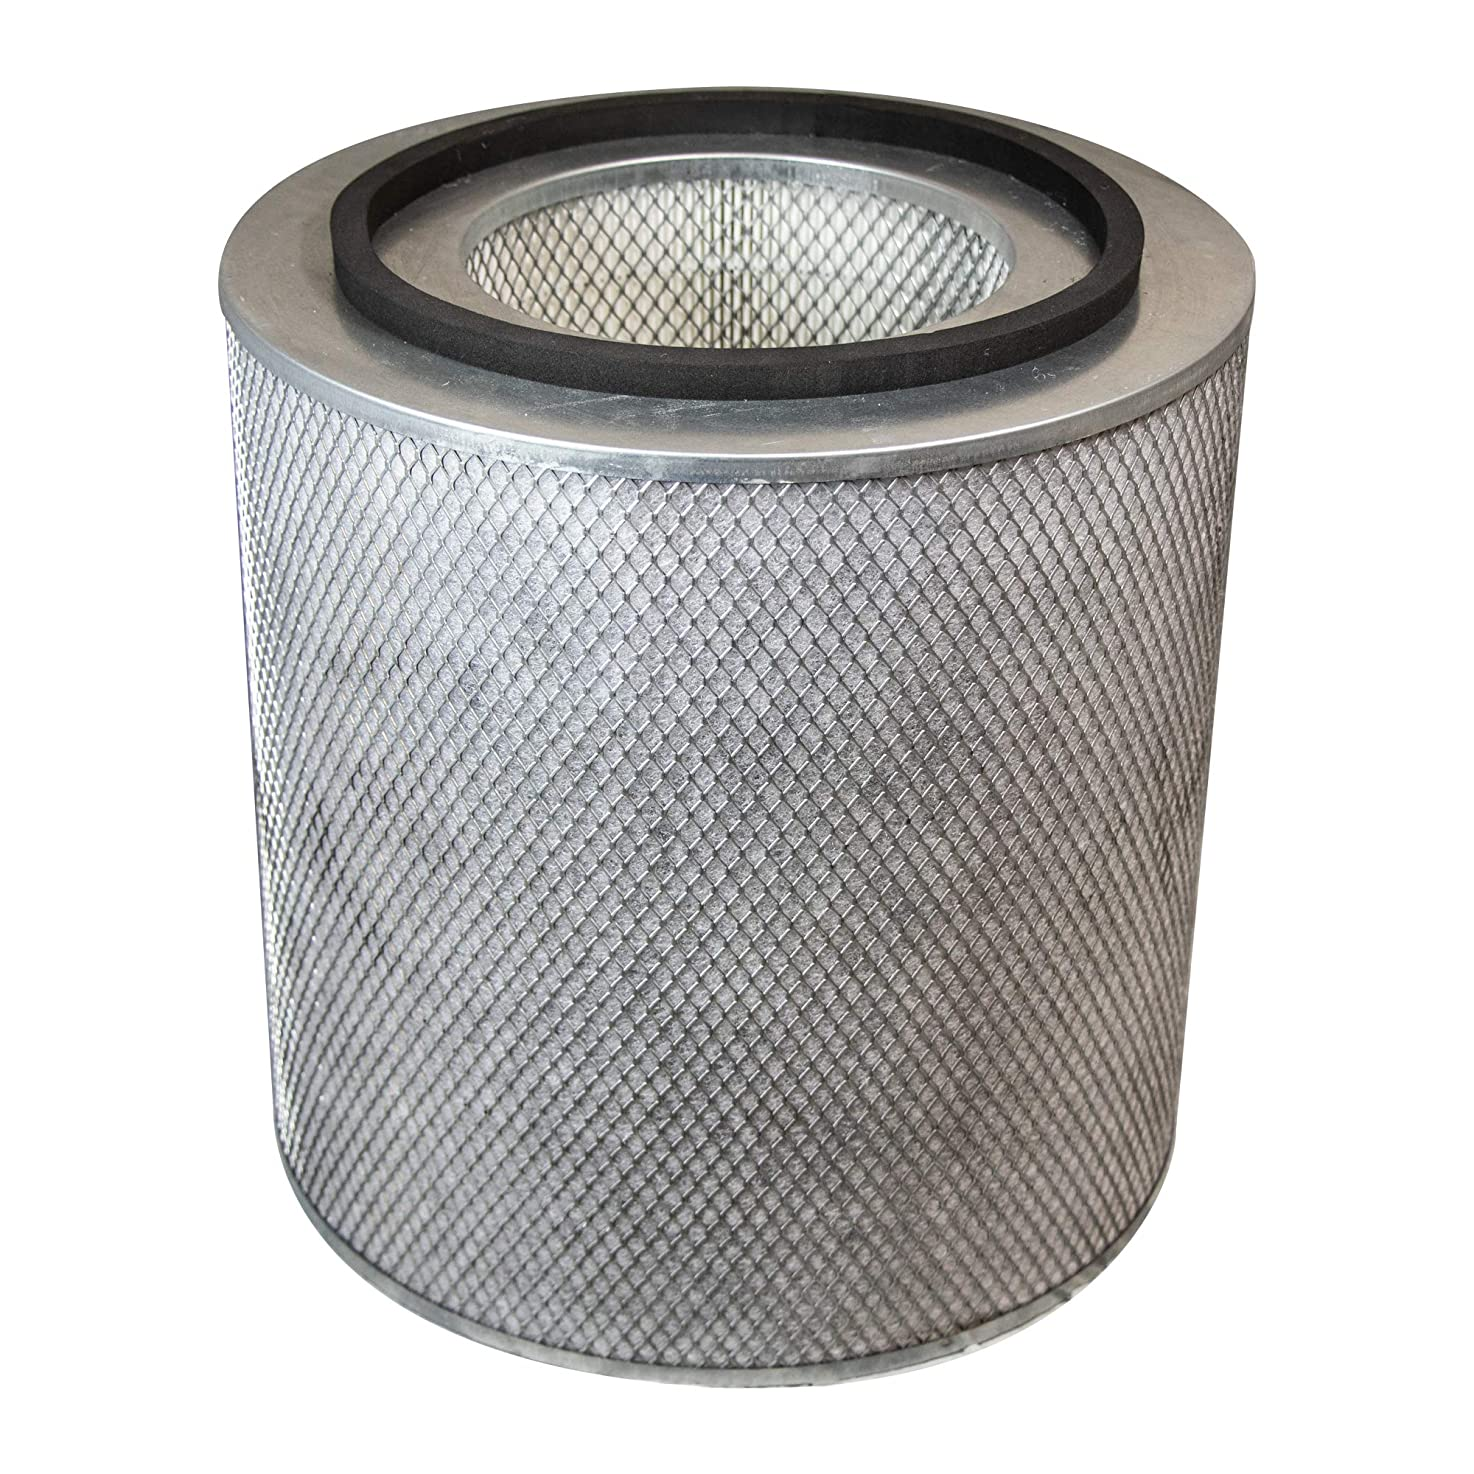 Replacement for Austin Air Allergy Machine (HM405) Filter with Pre-Filter